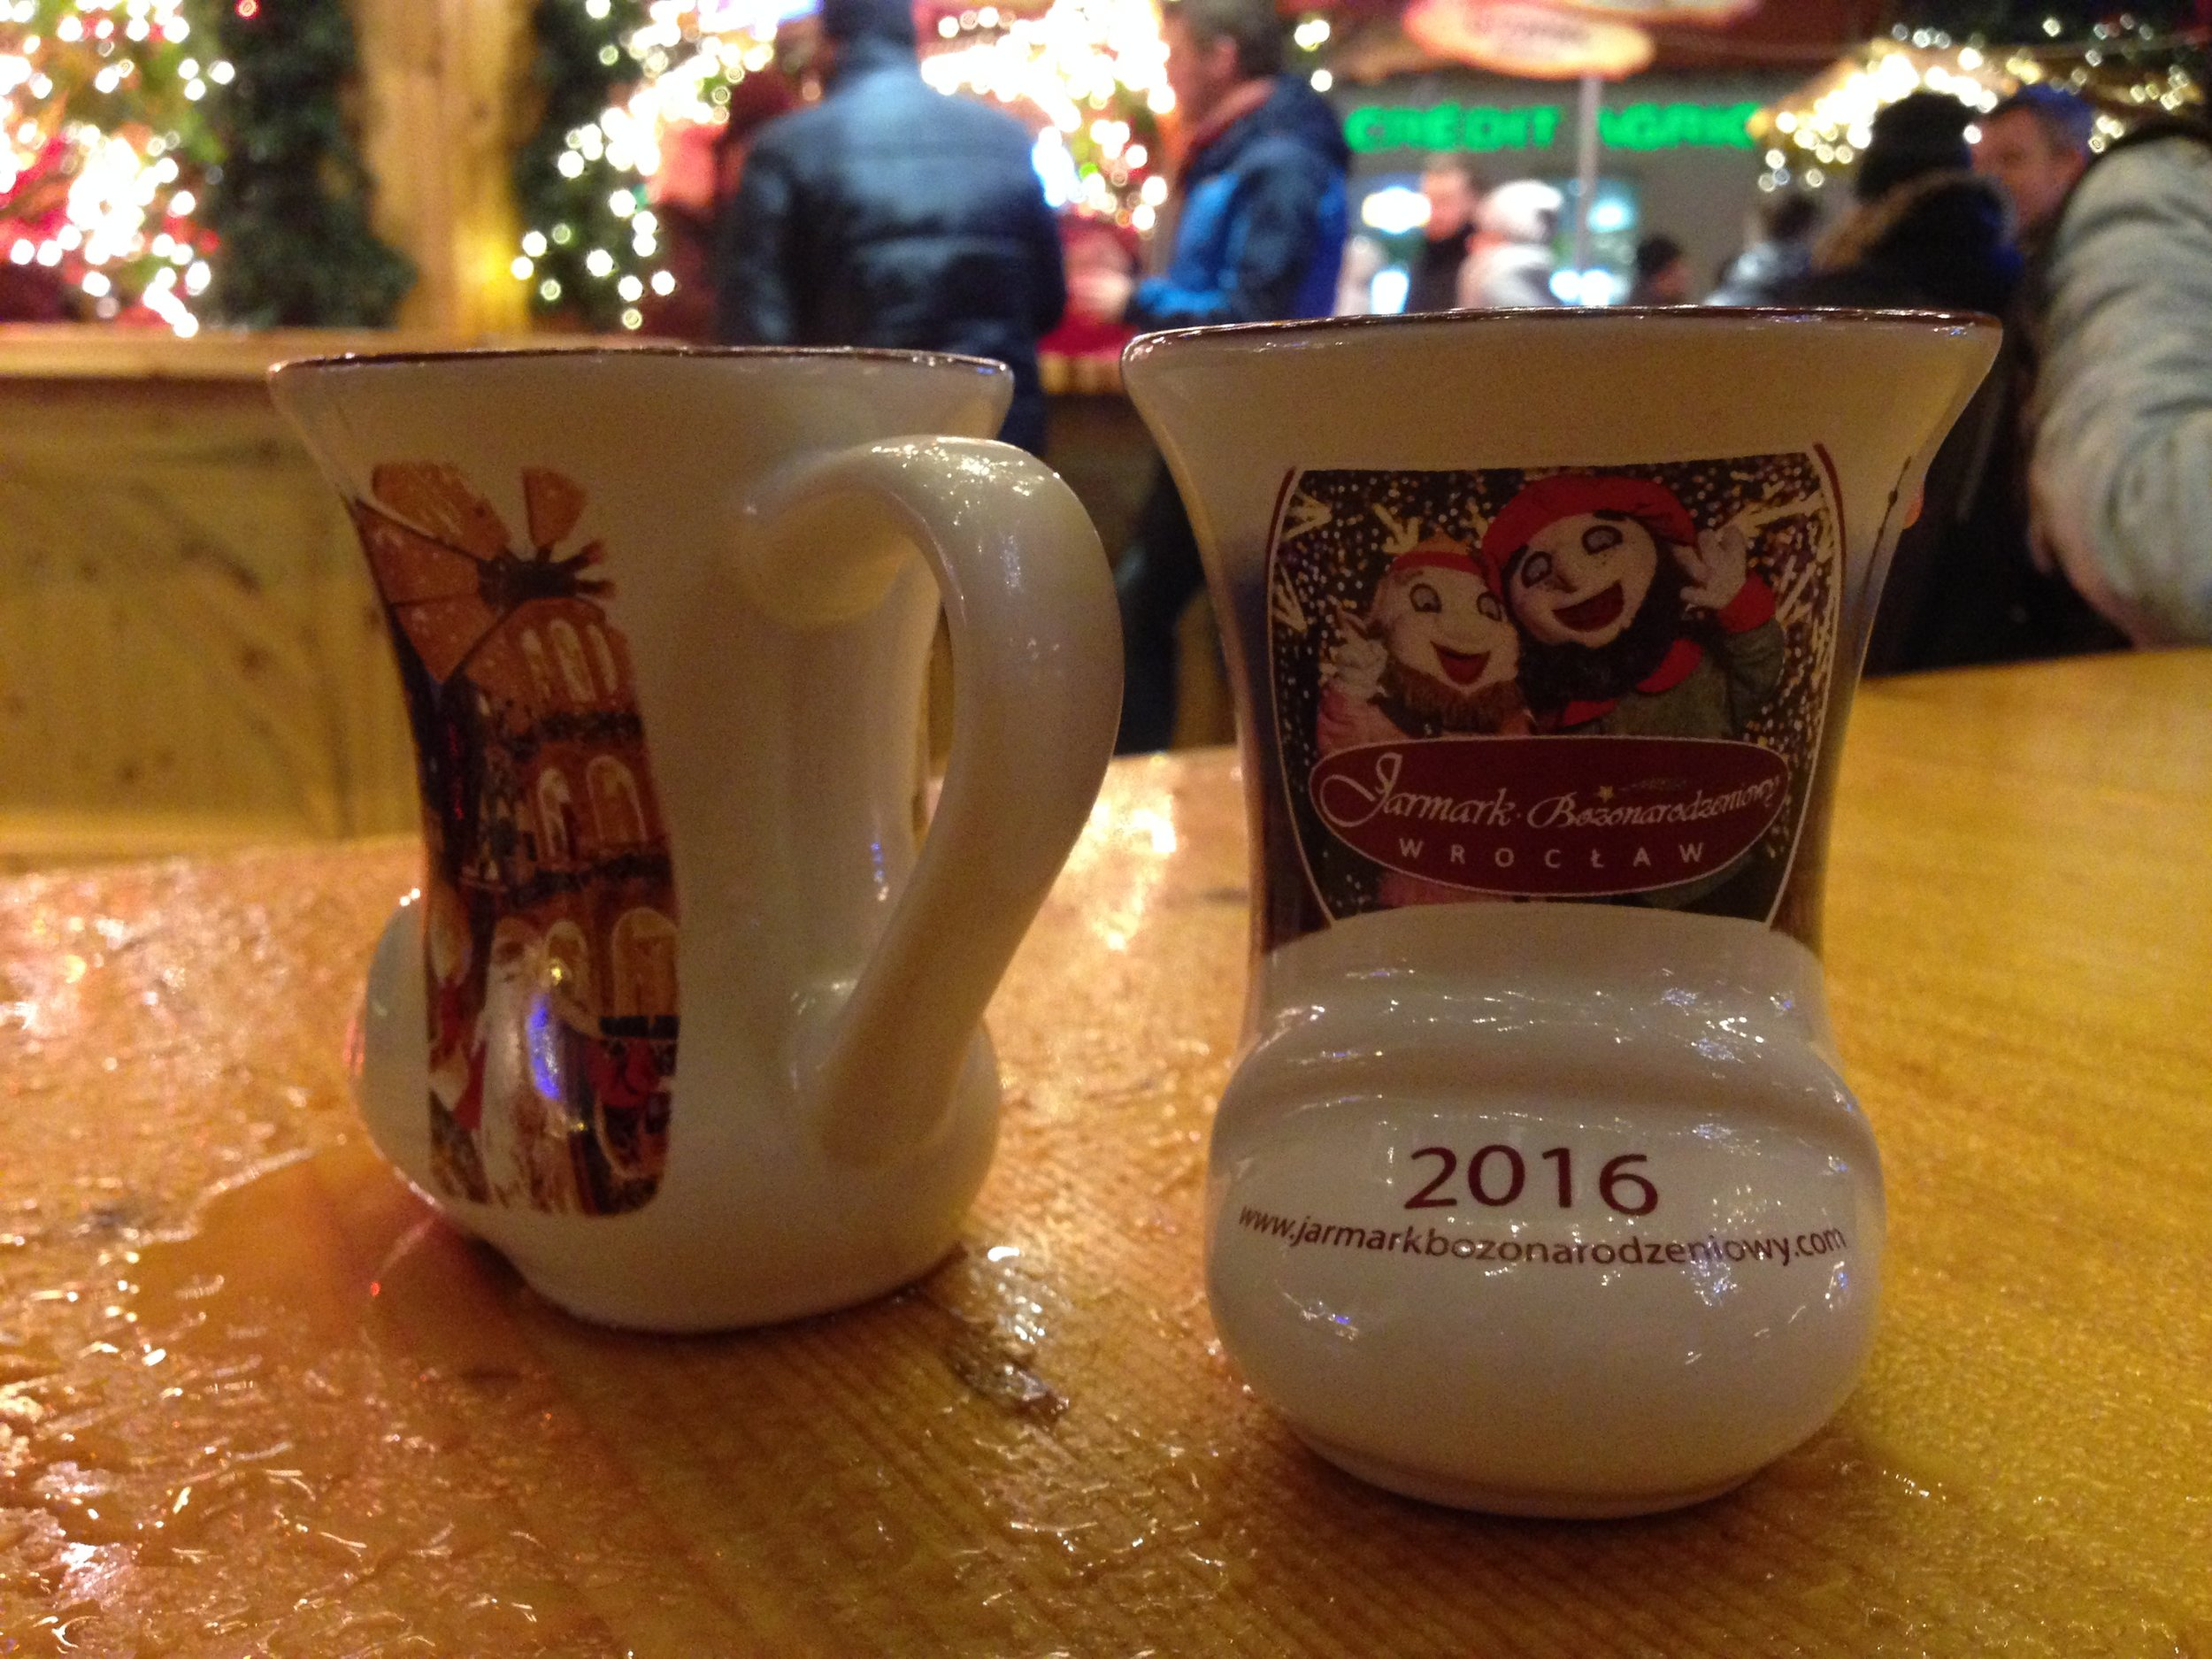 Mulled-Wine-Wroclaw-Poland